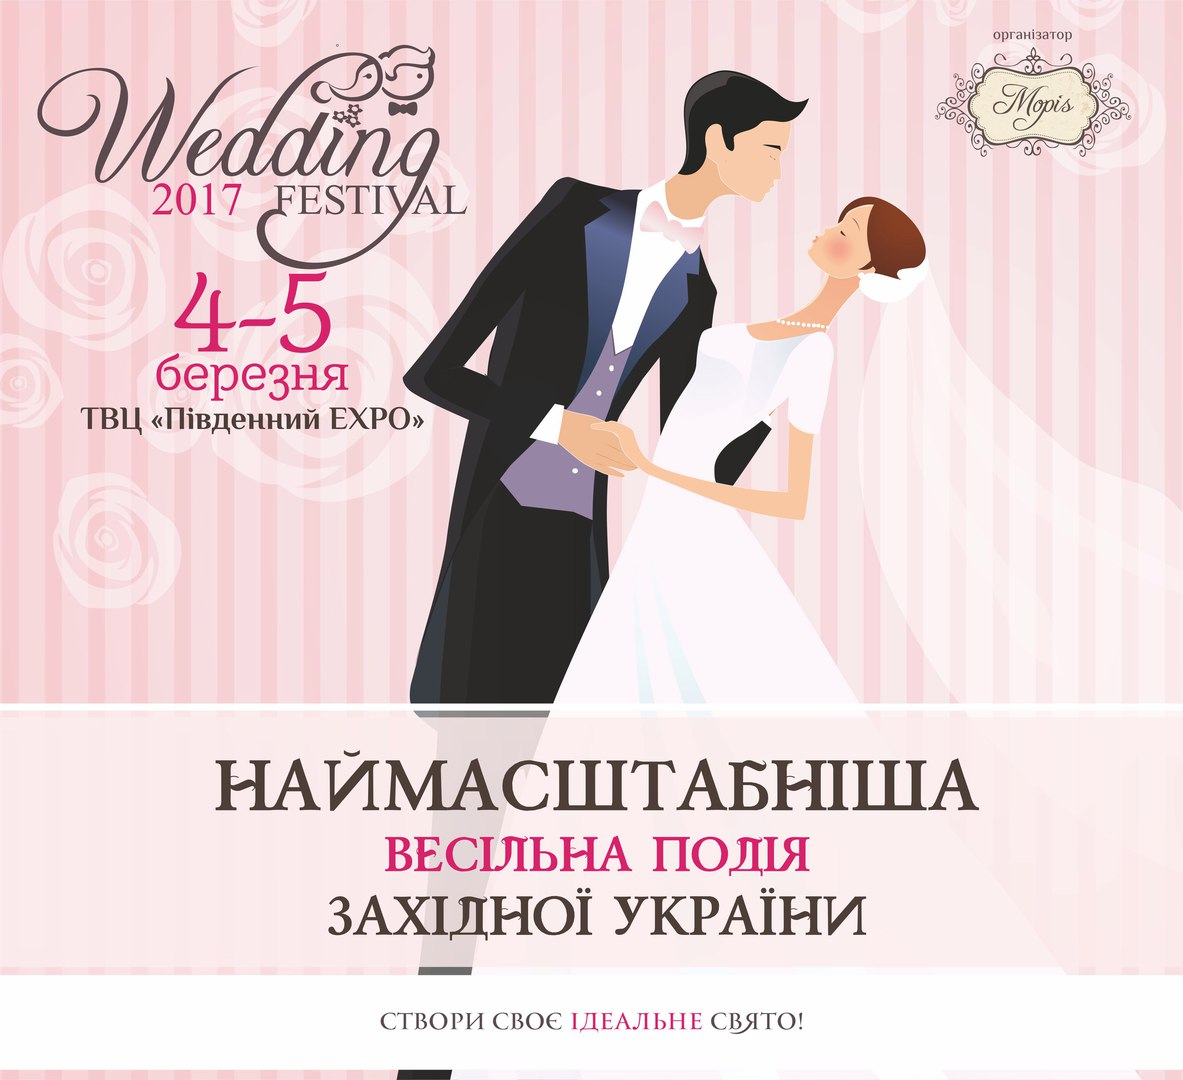 Lviv Wedding Festival 2017